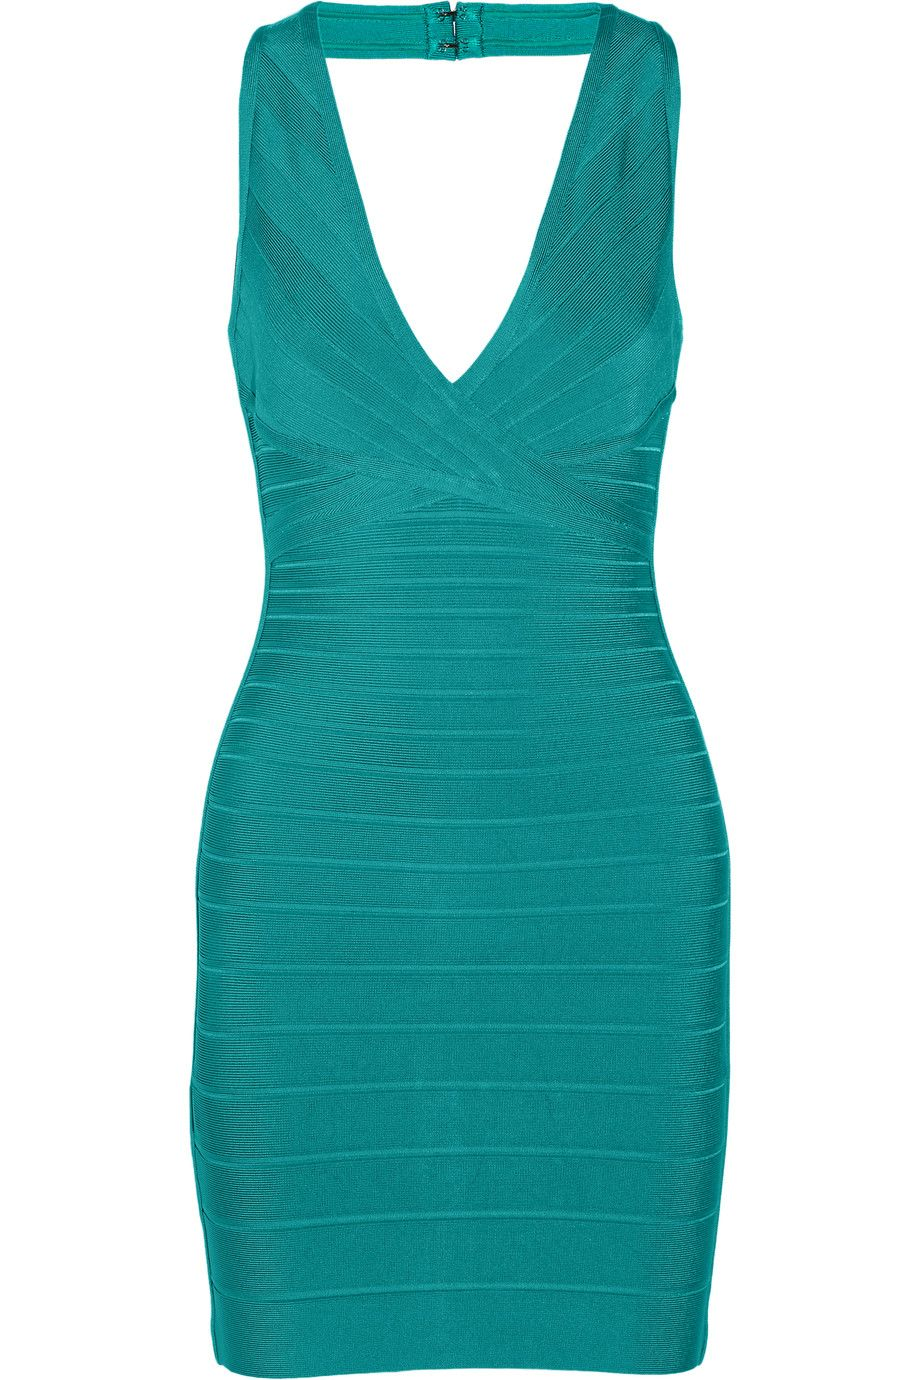 7dc1c0a2315f HERVE LEGER Nadya Bandage Halterneck Dress.  herveleger  cloth  dress